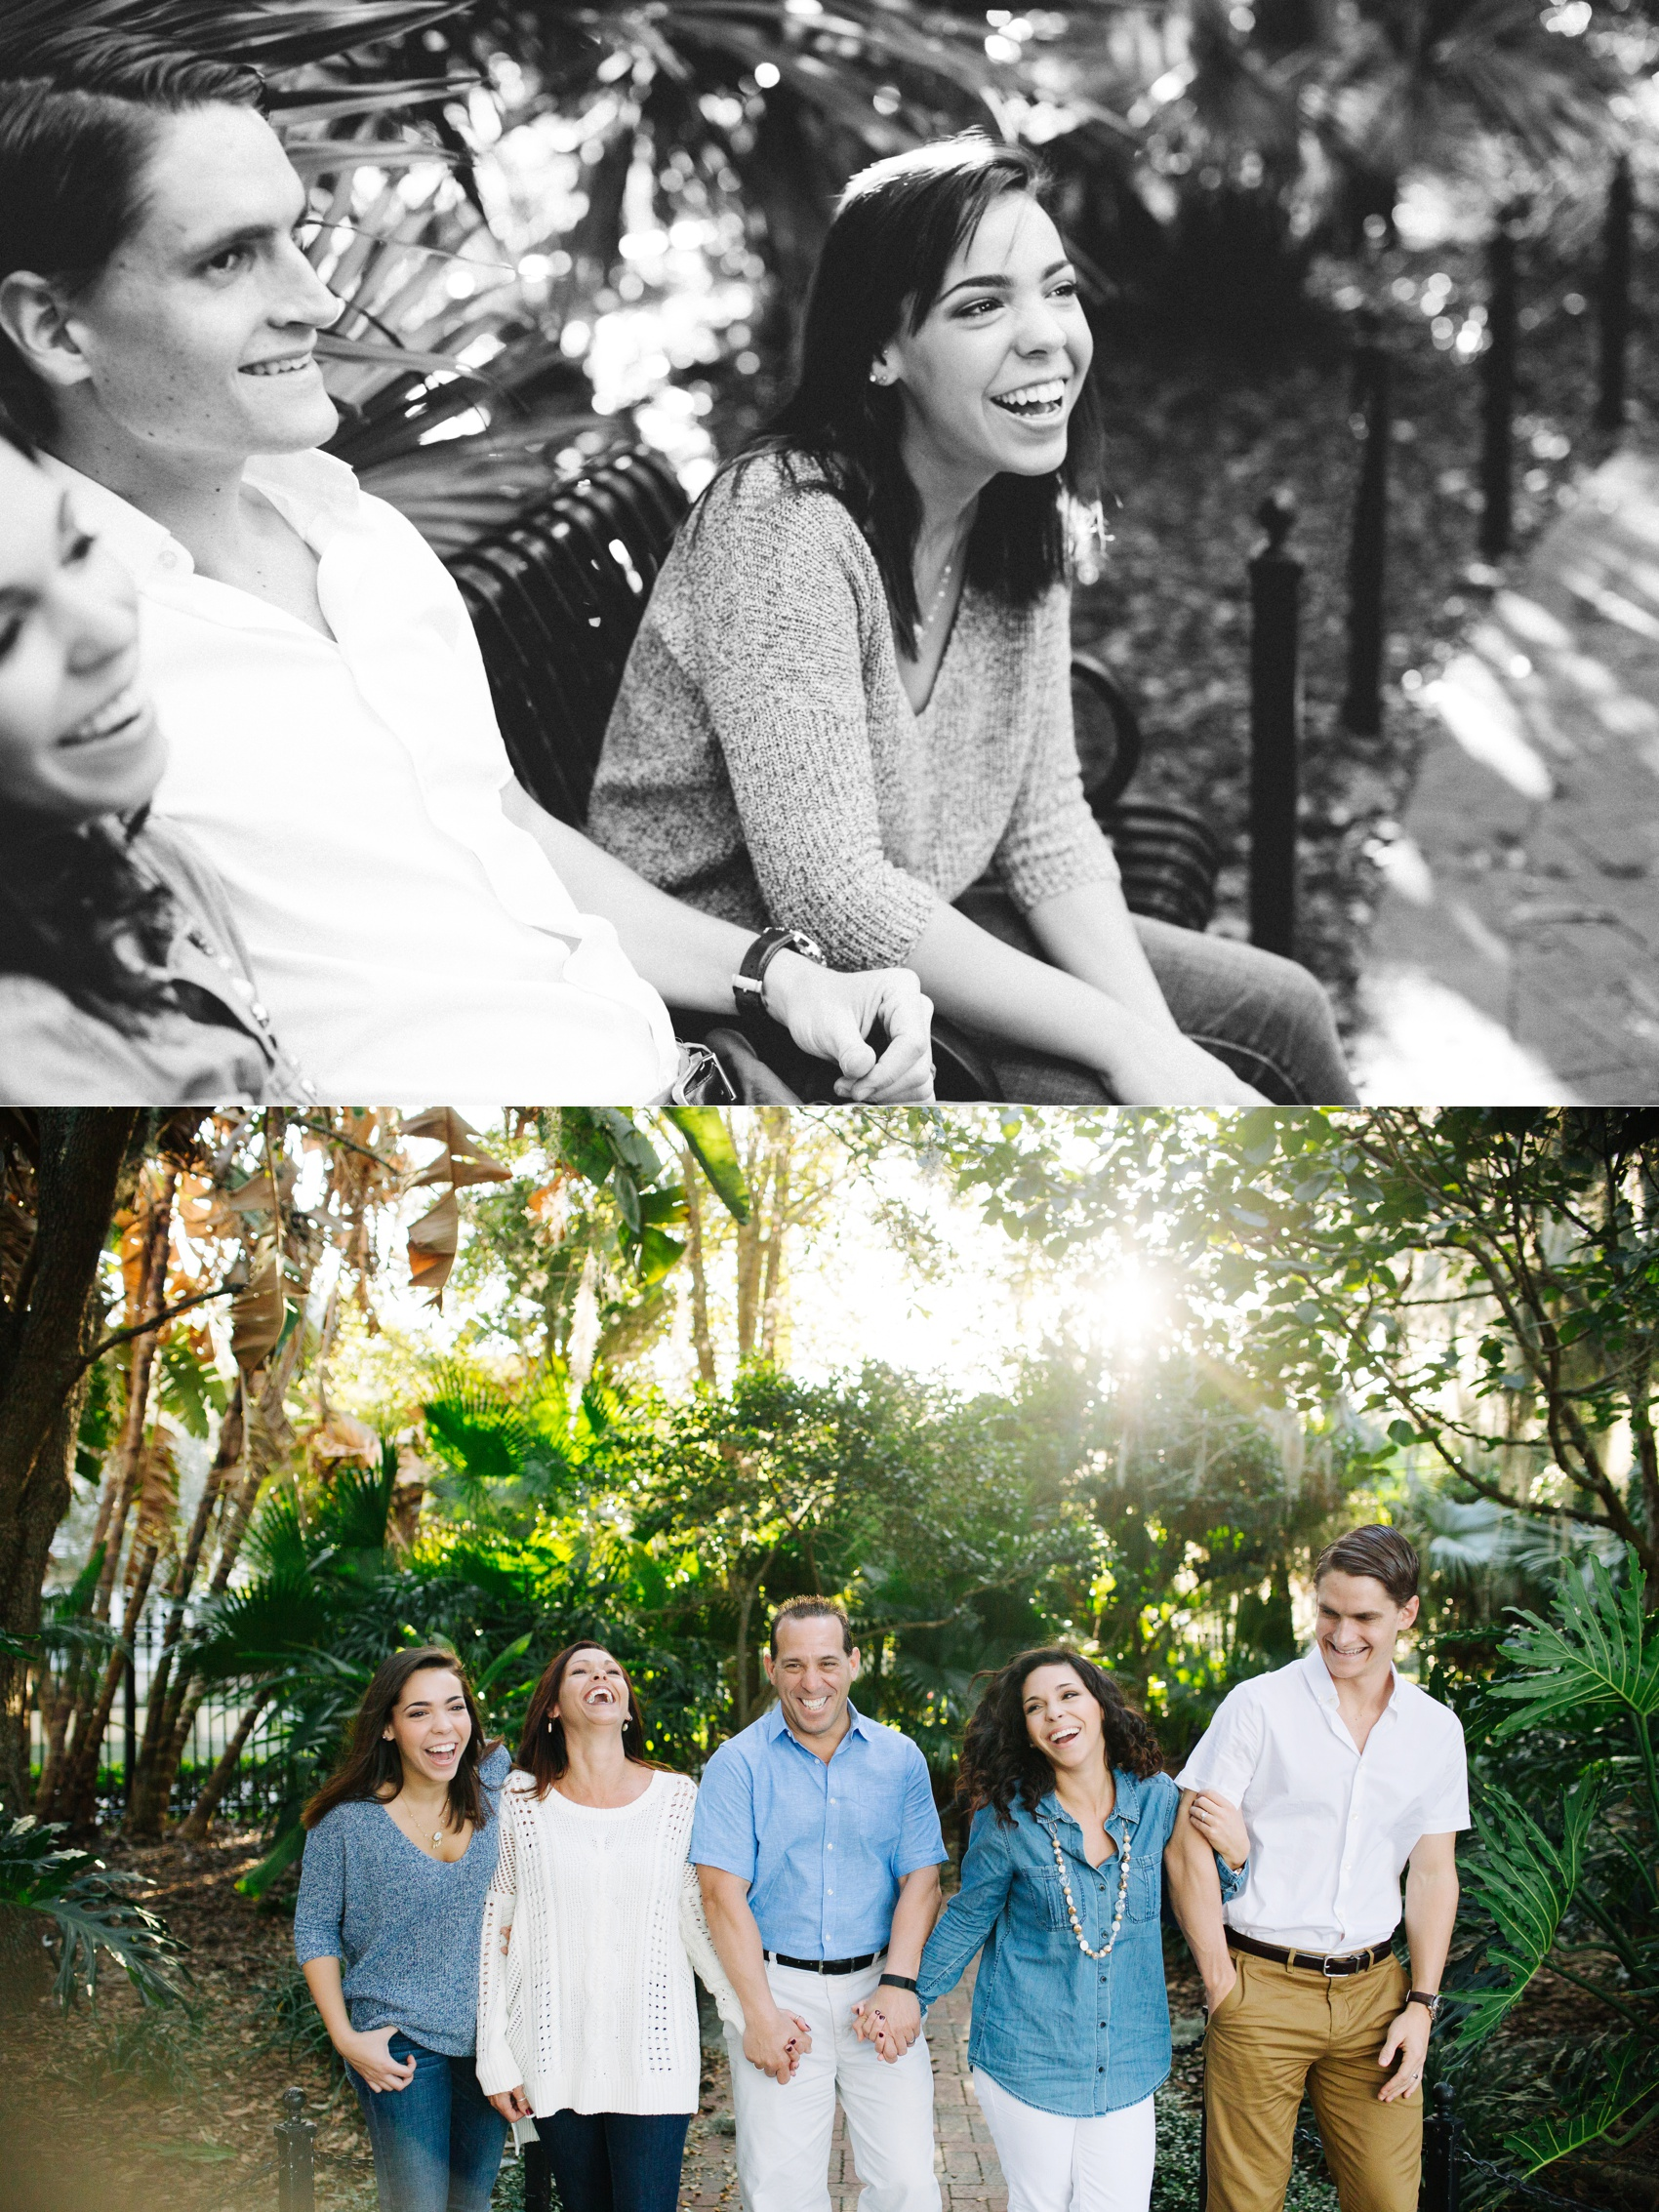 jake-and-katie-tampa-bay-family-portraits-8